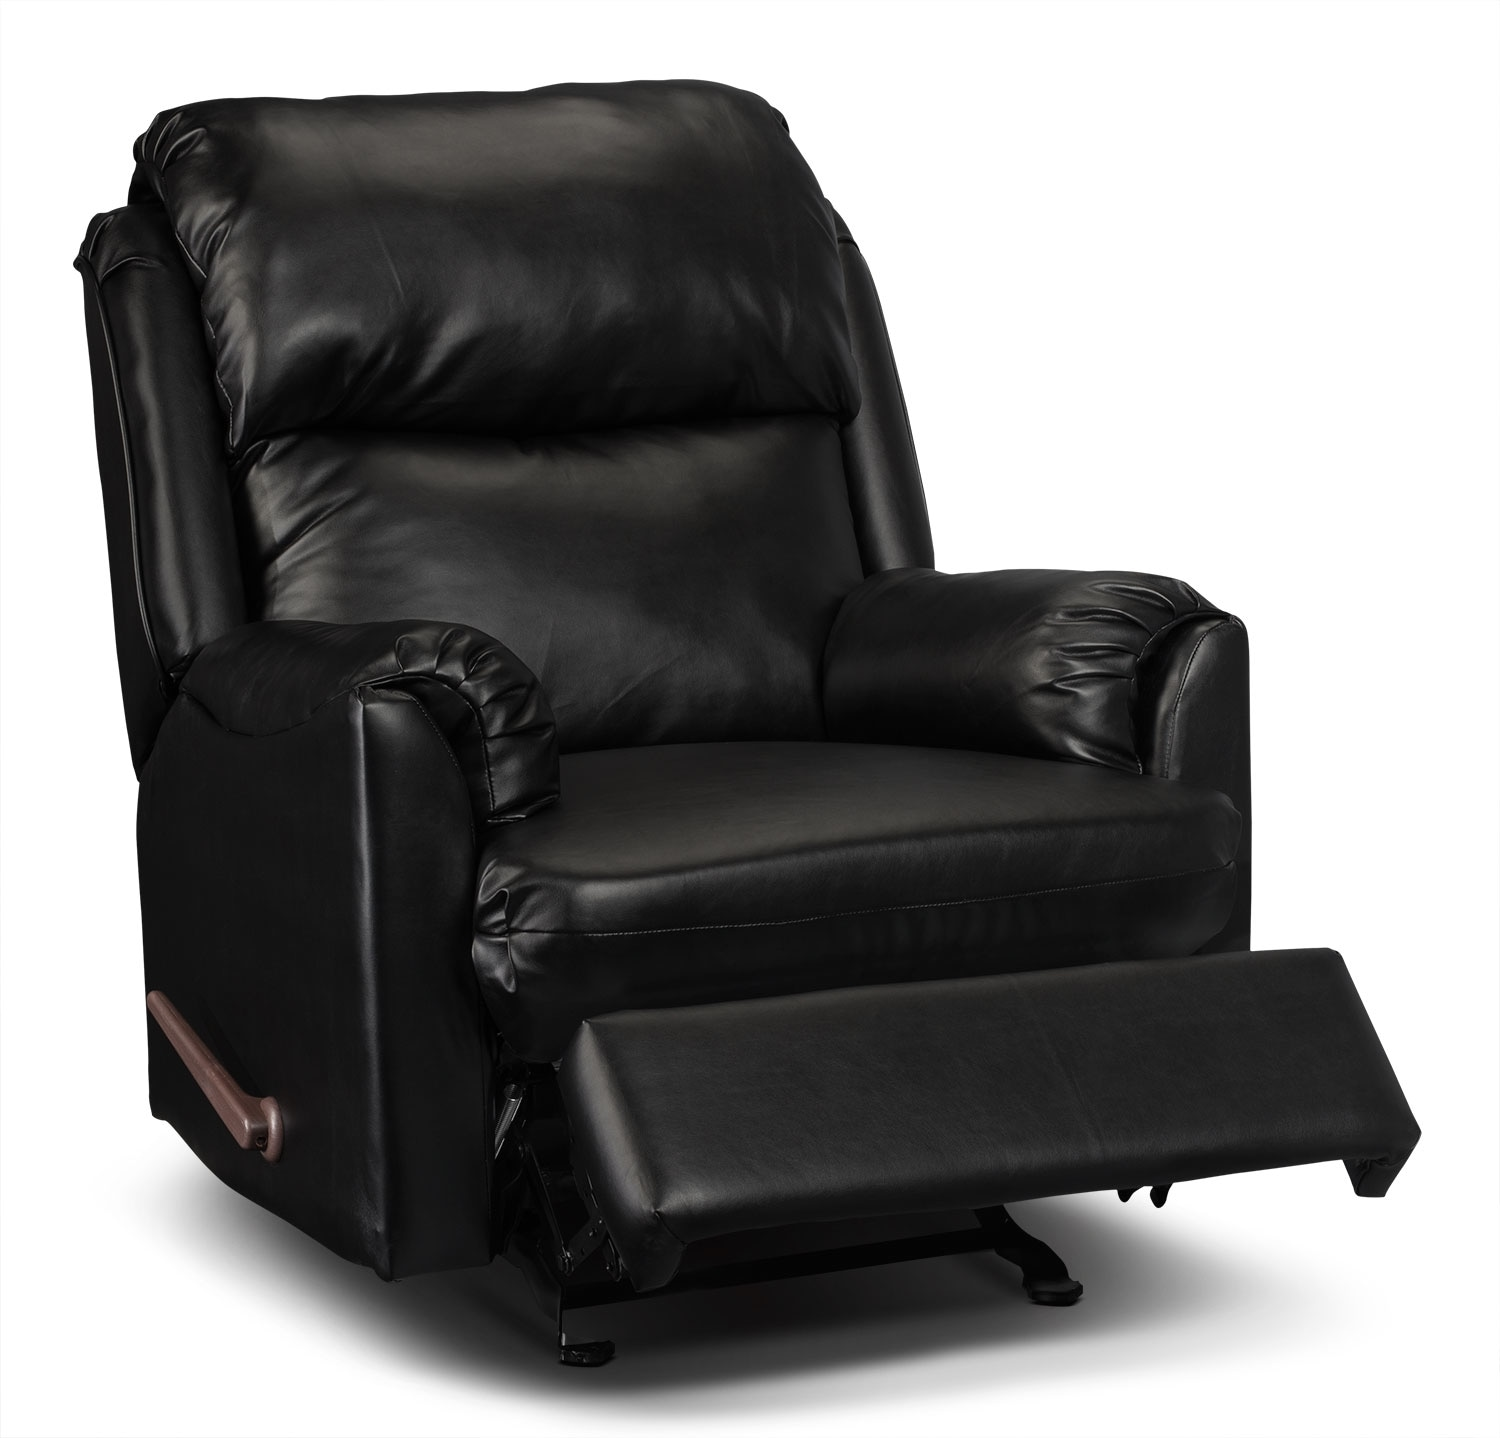 Drogba Faux Leather Recliner